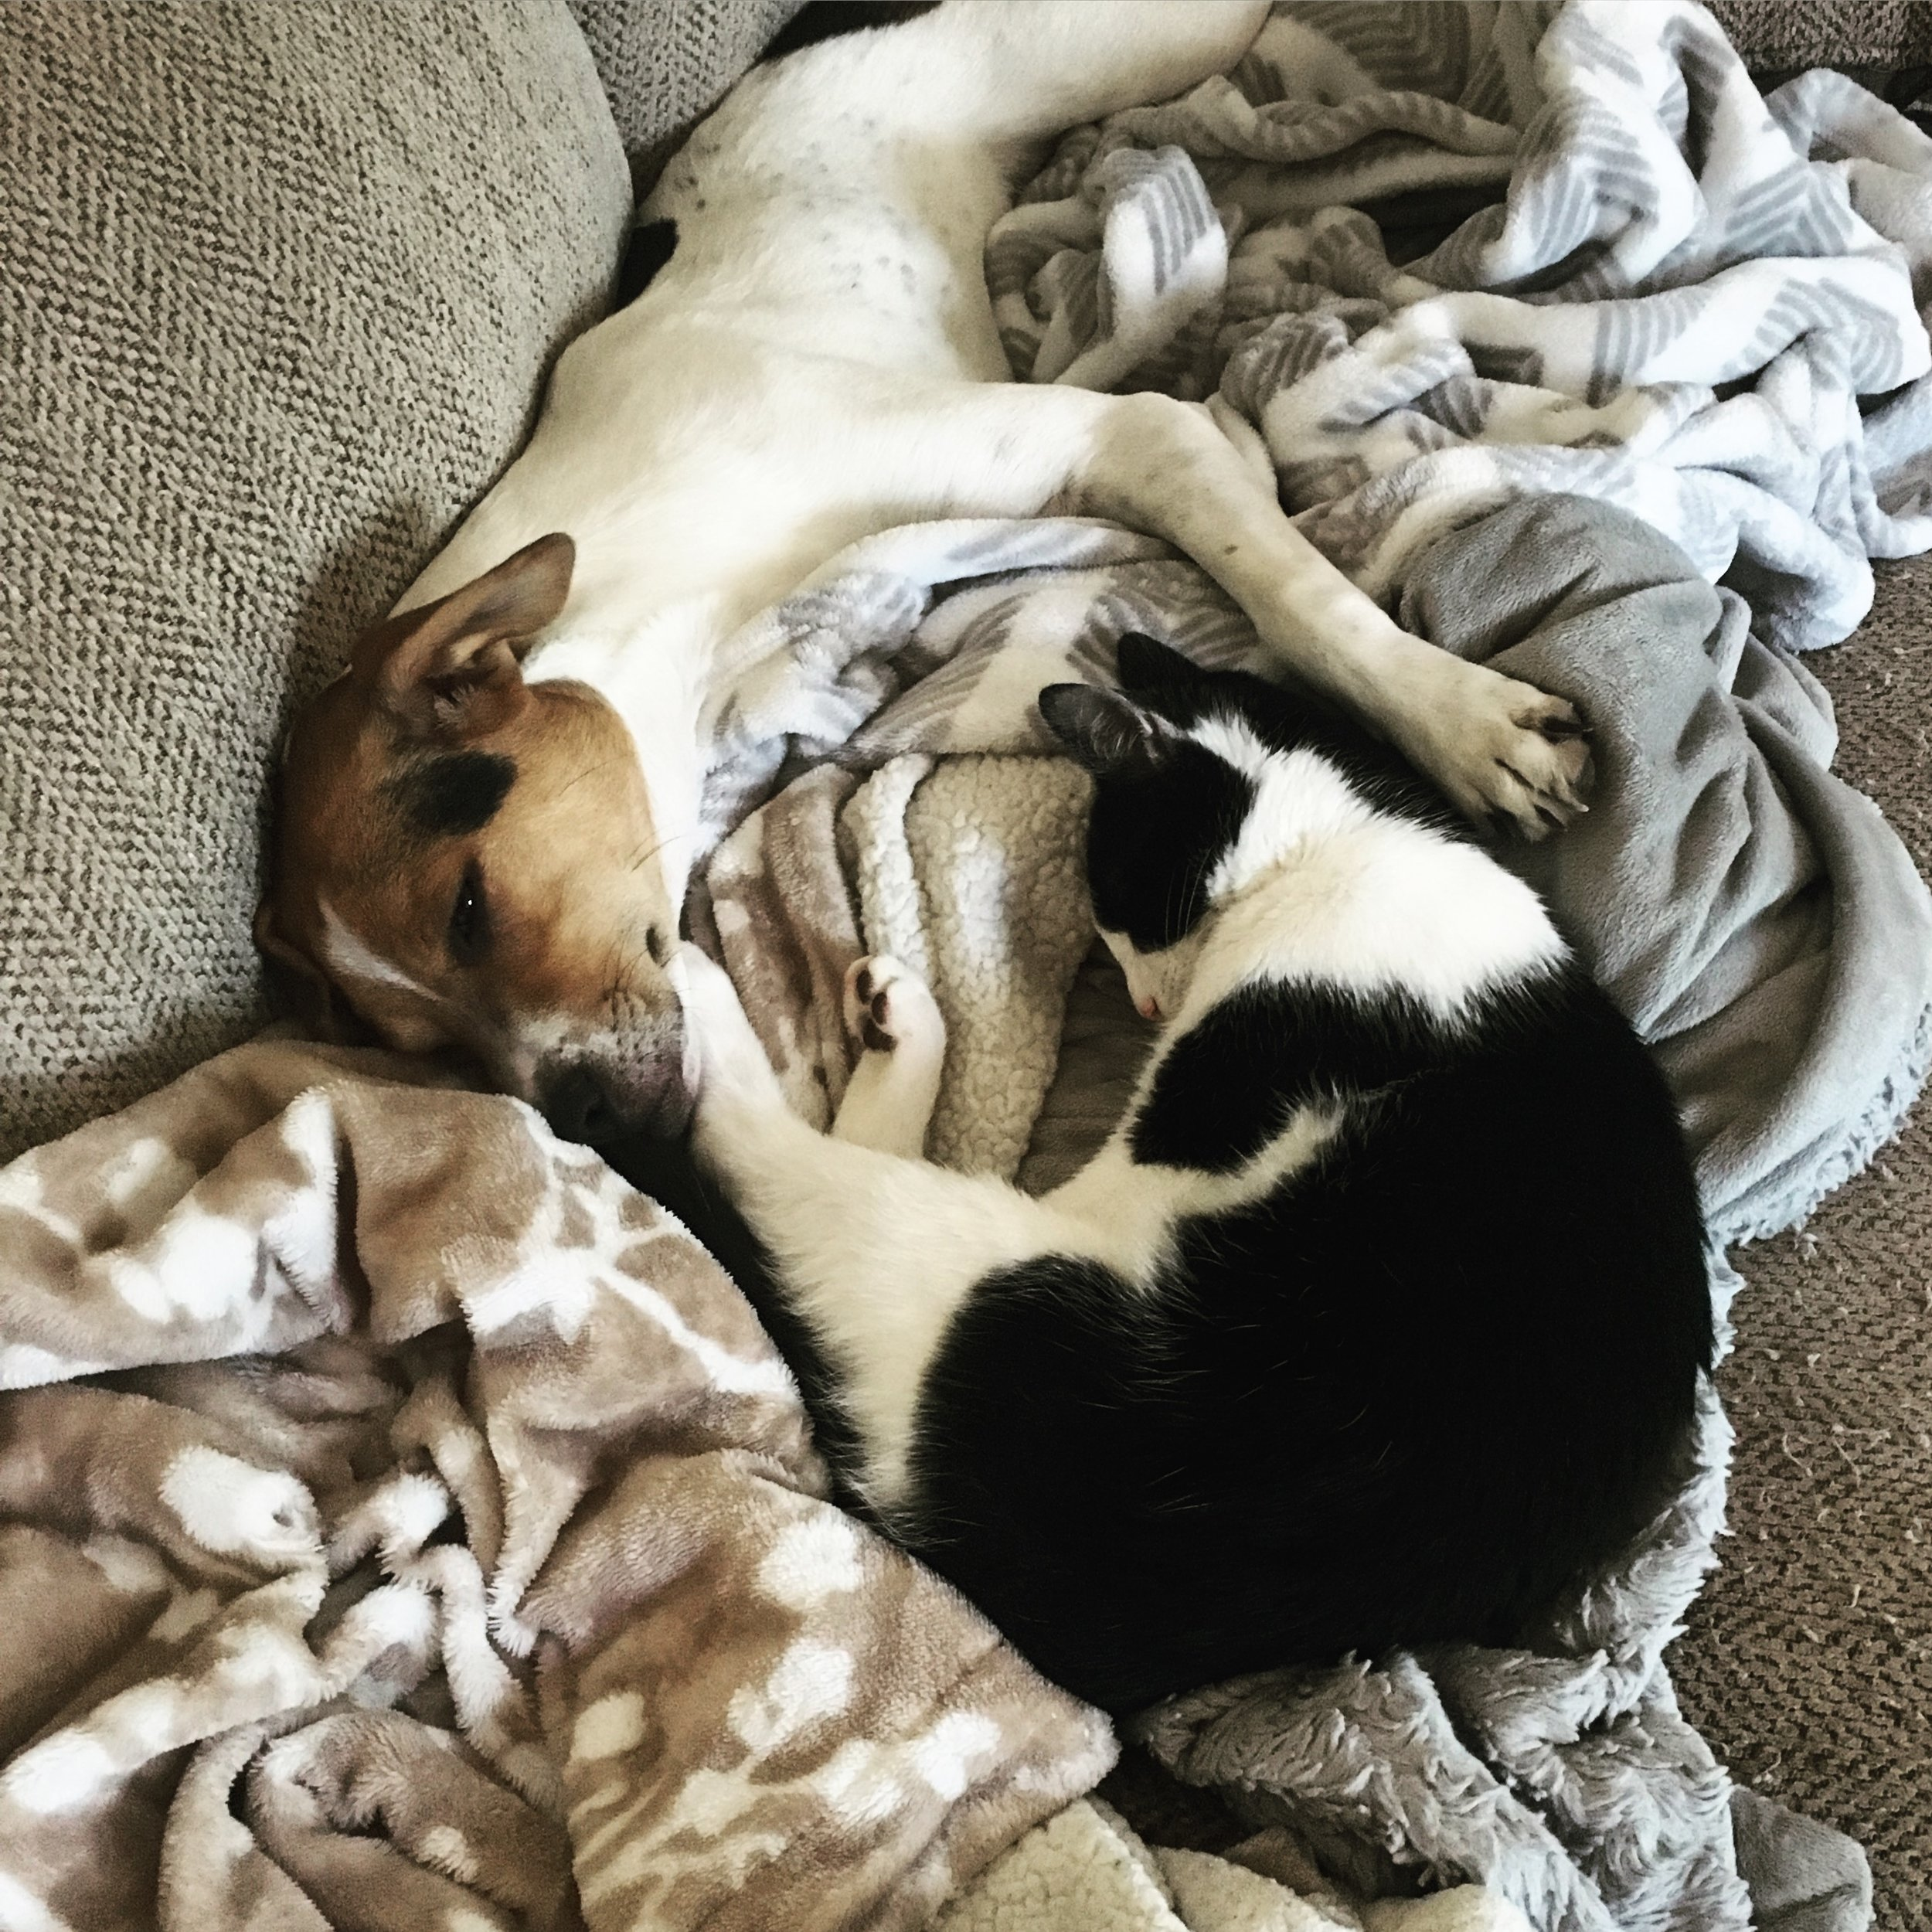 My newest pup,Molly, adopted in June 2017 [adopt, don't shop!]. And my baby cat, Augustus [Gus for short], moved in August 2017 [hence the name!]. They love to cuddle and play!